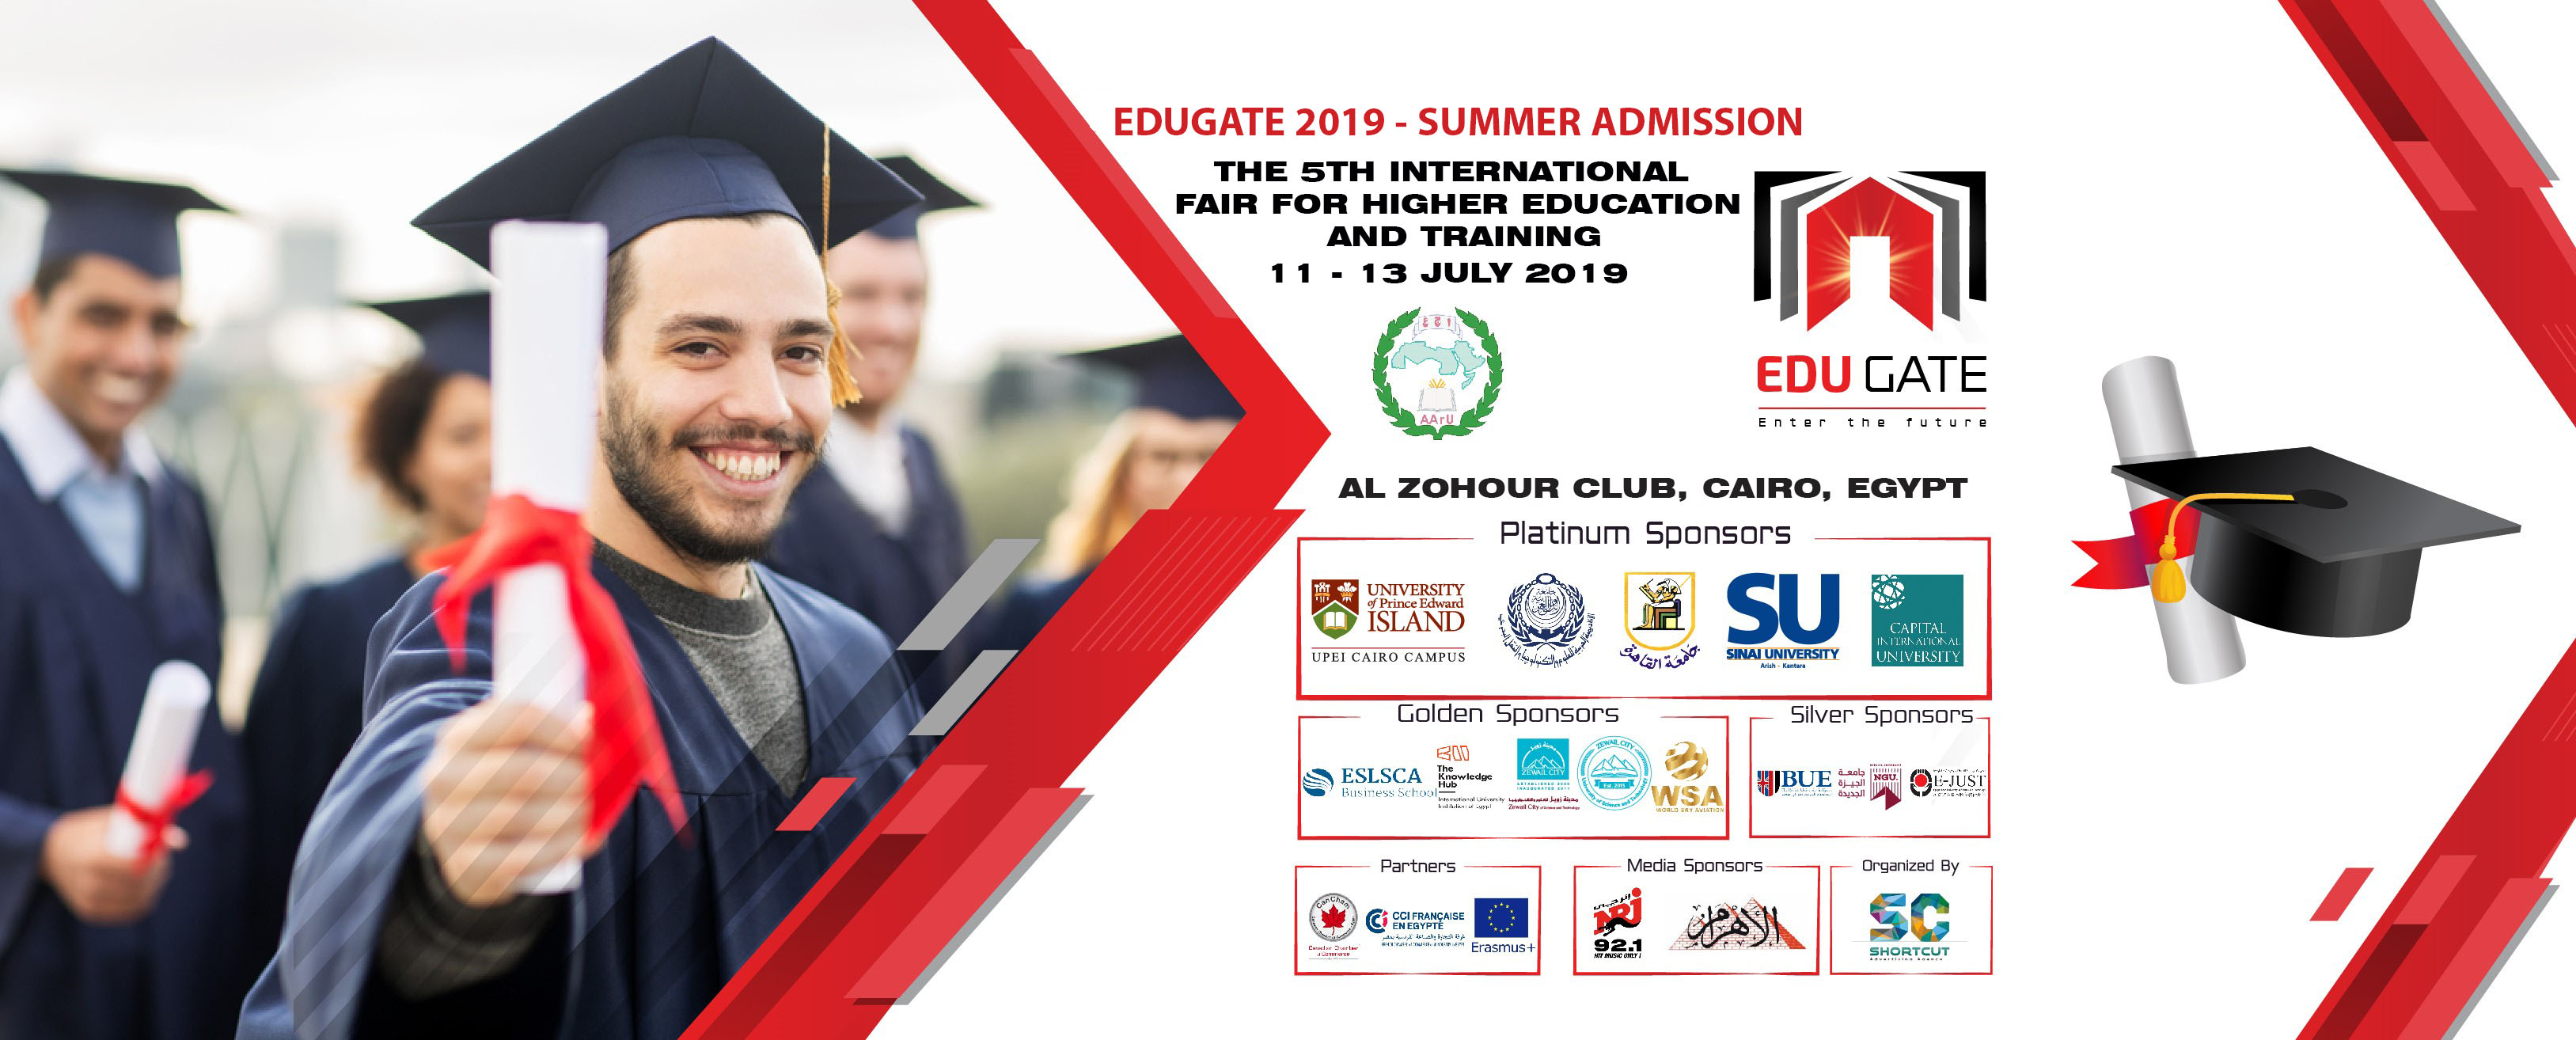 The 5th International Fair for Higher Education and Training.